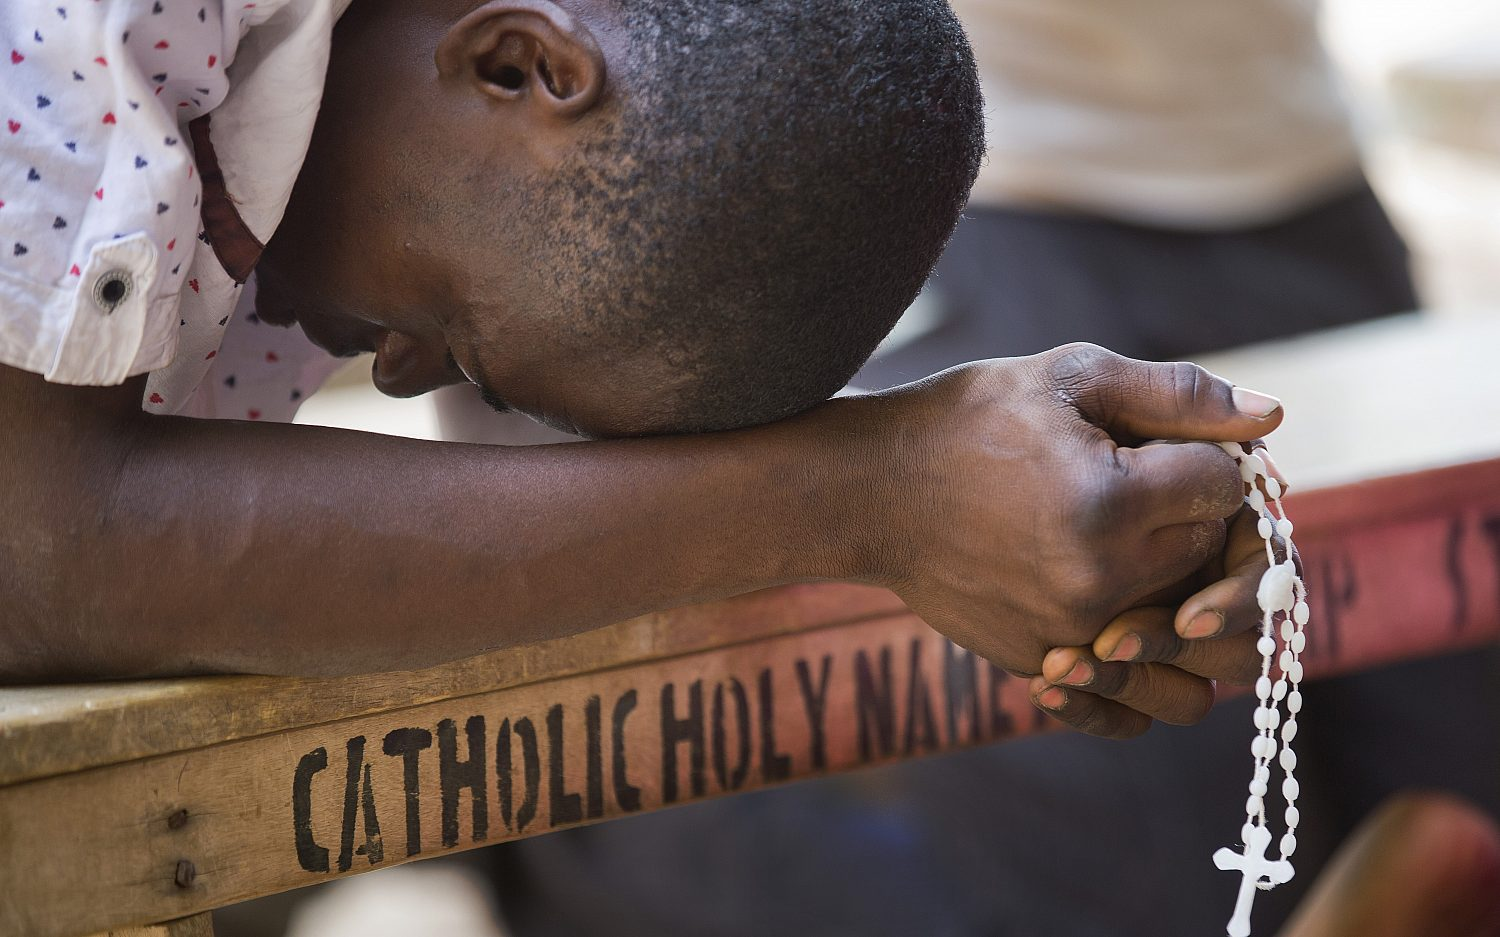 Christians continue to face persecution around the world